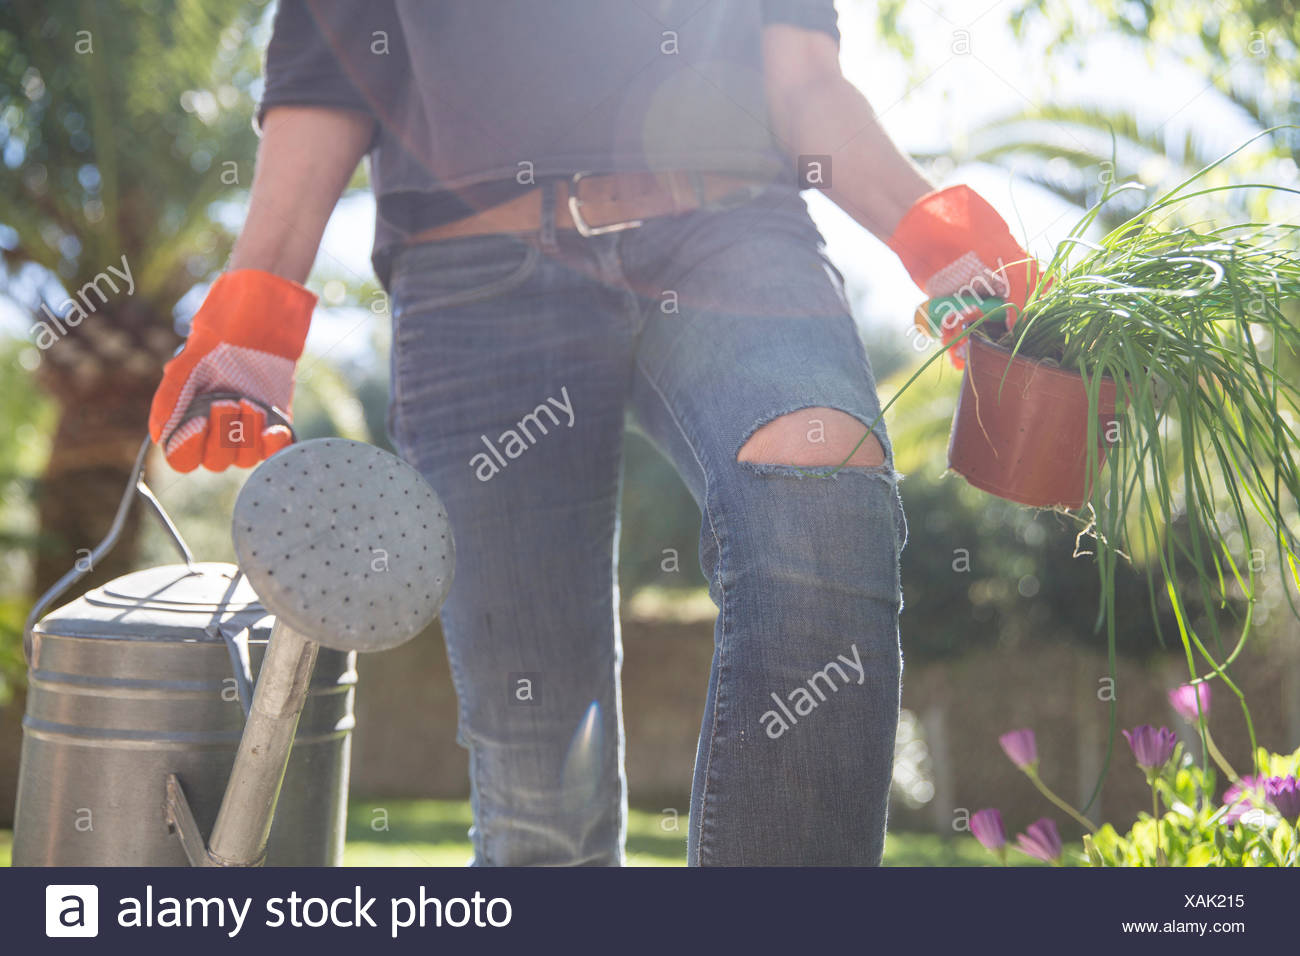 Woman carrying plant and watering can in garden - Stock Image